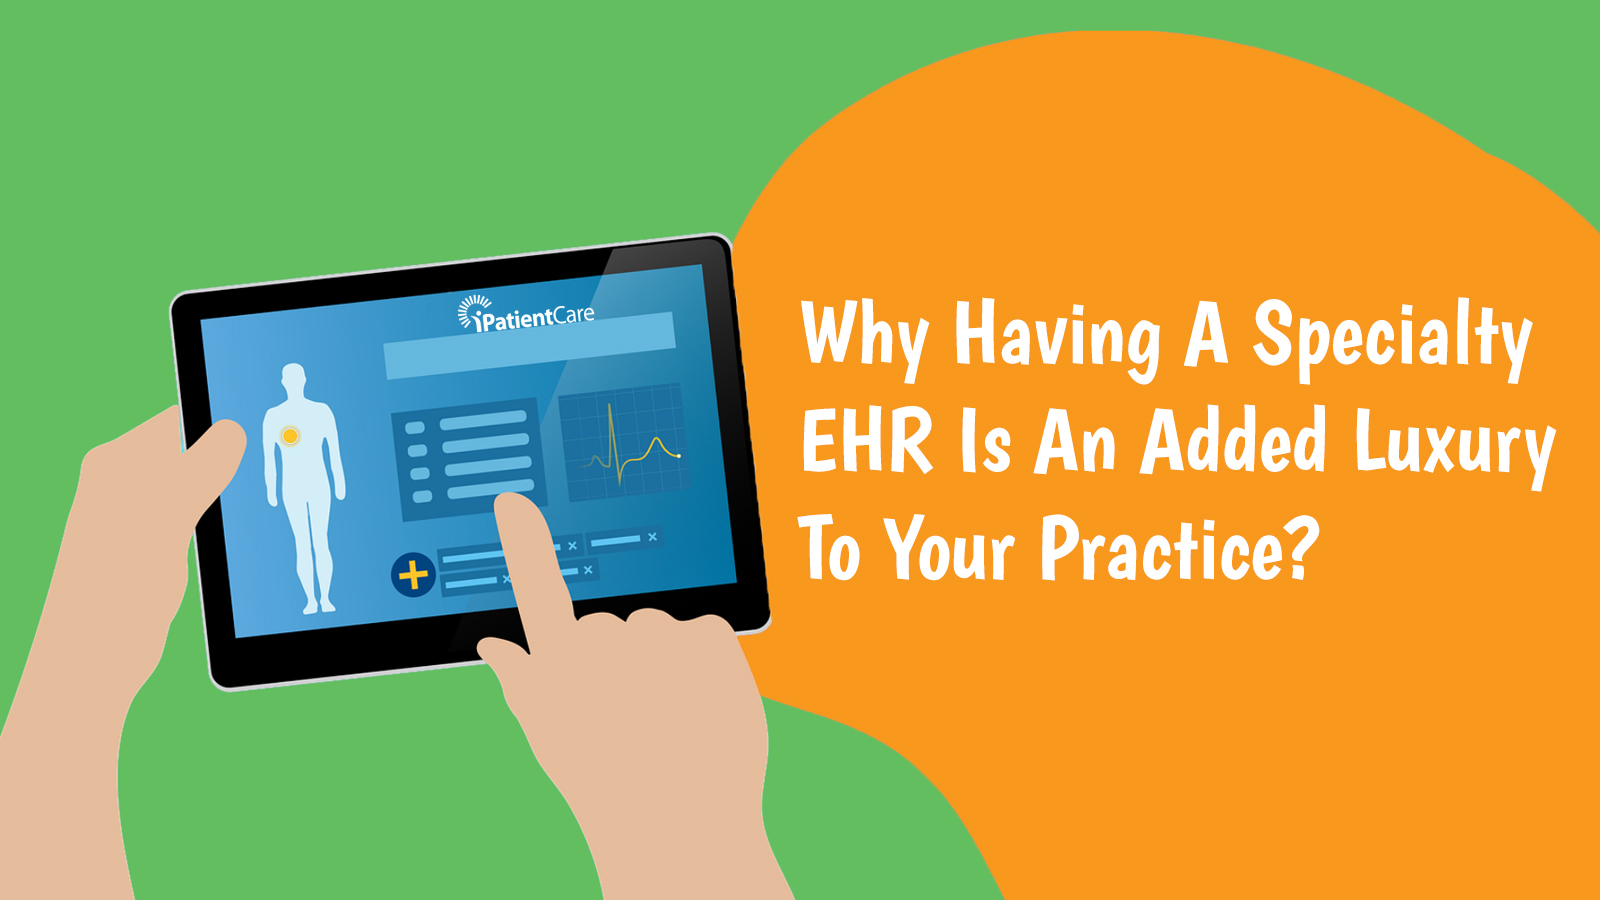 Why Having A Specialty EHR Is An Added Luxury To Your Practice